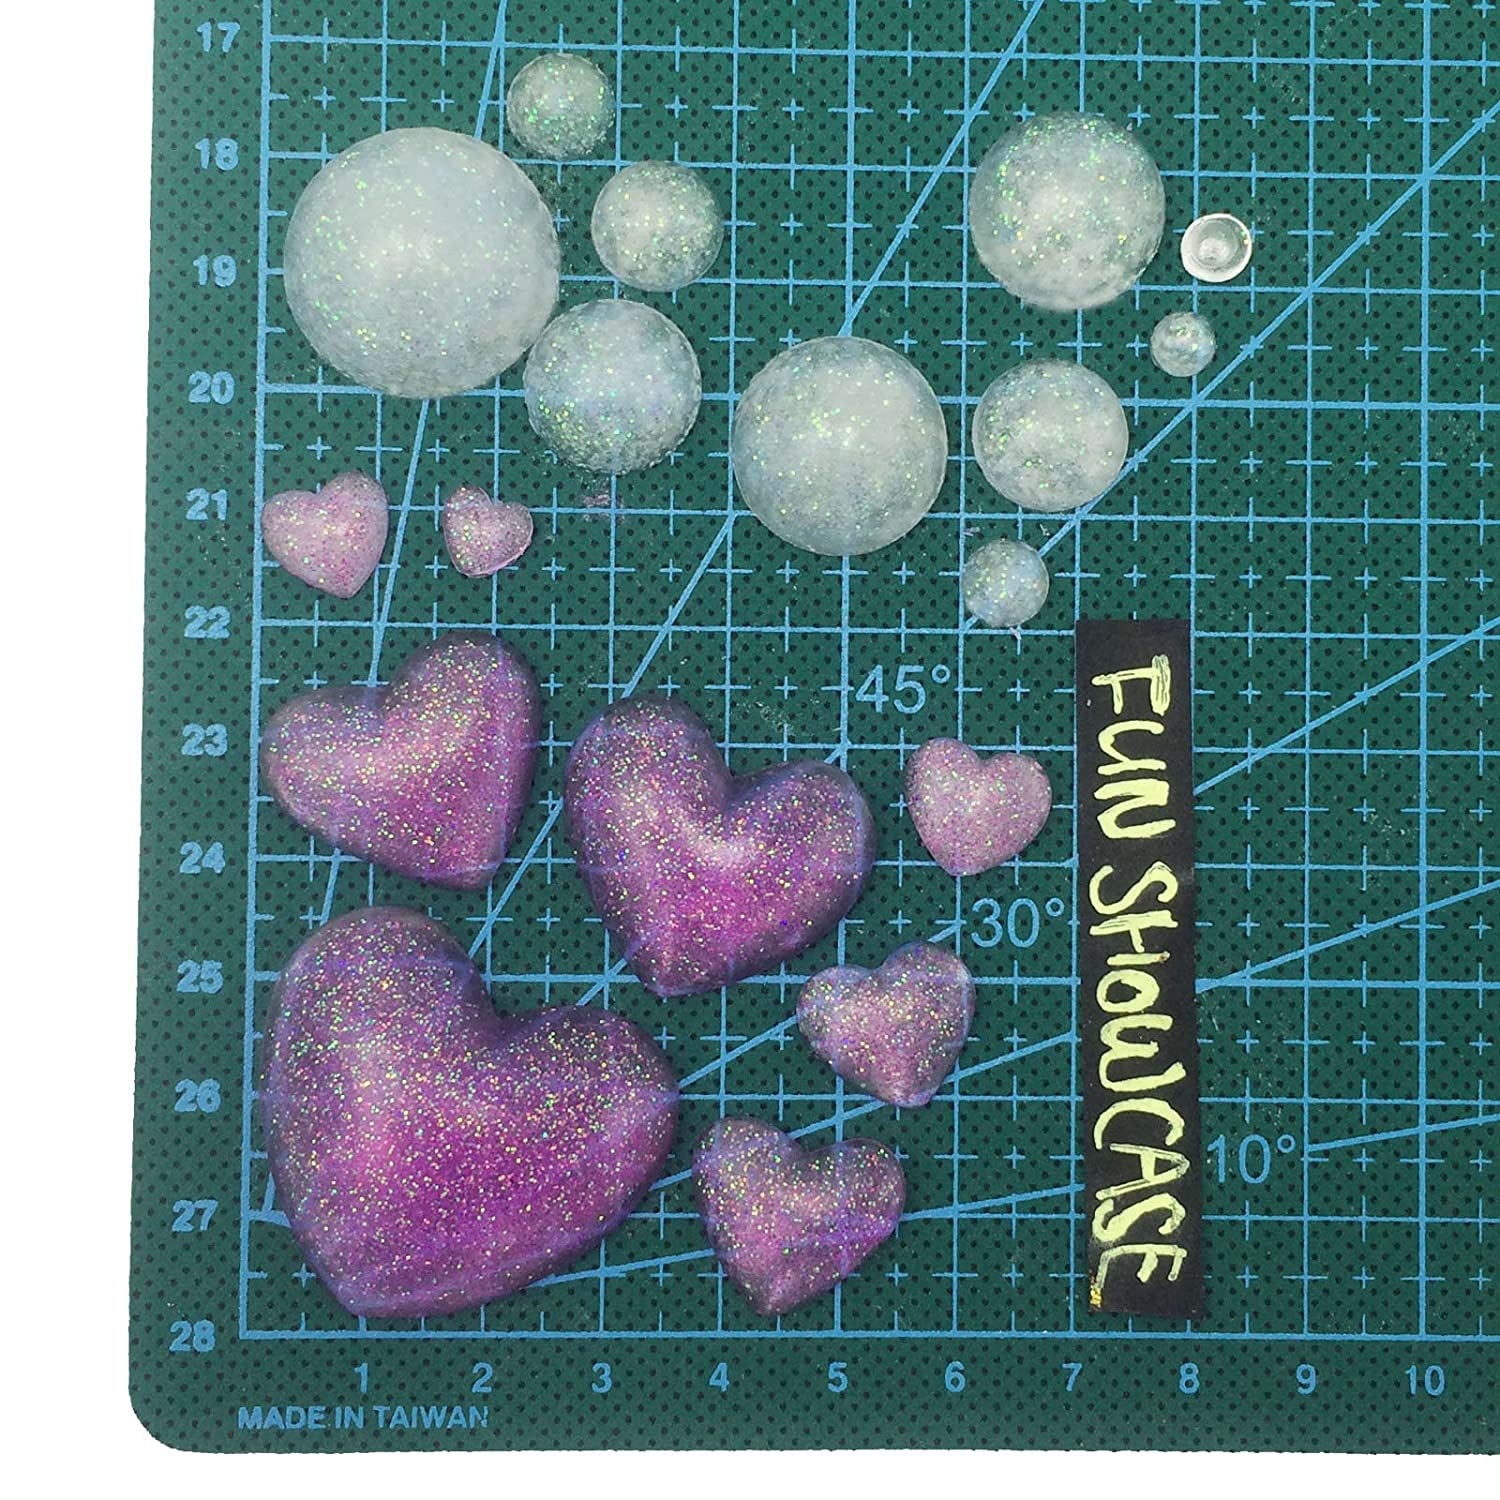 Crafting Polymer Clay Resin Epoxy Jewelry Making 7x7x1.5cm Funshowcase Dome Cabochon Gemstone Pastry Silicone Mold for Cake Decoration Cupcake Topper